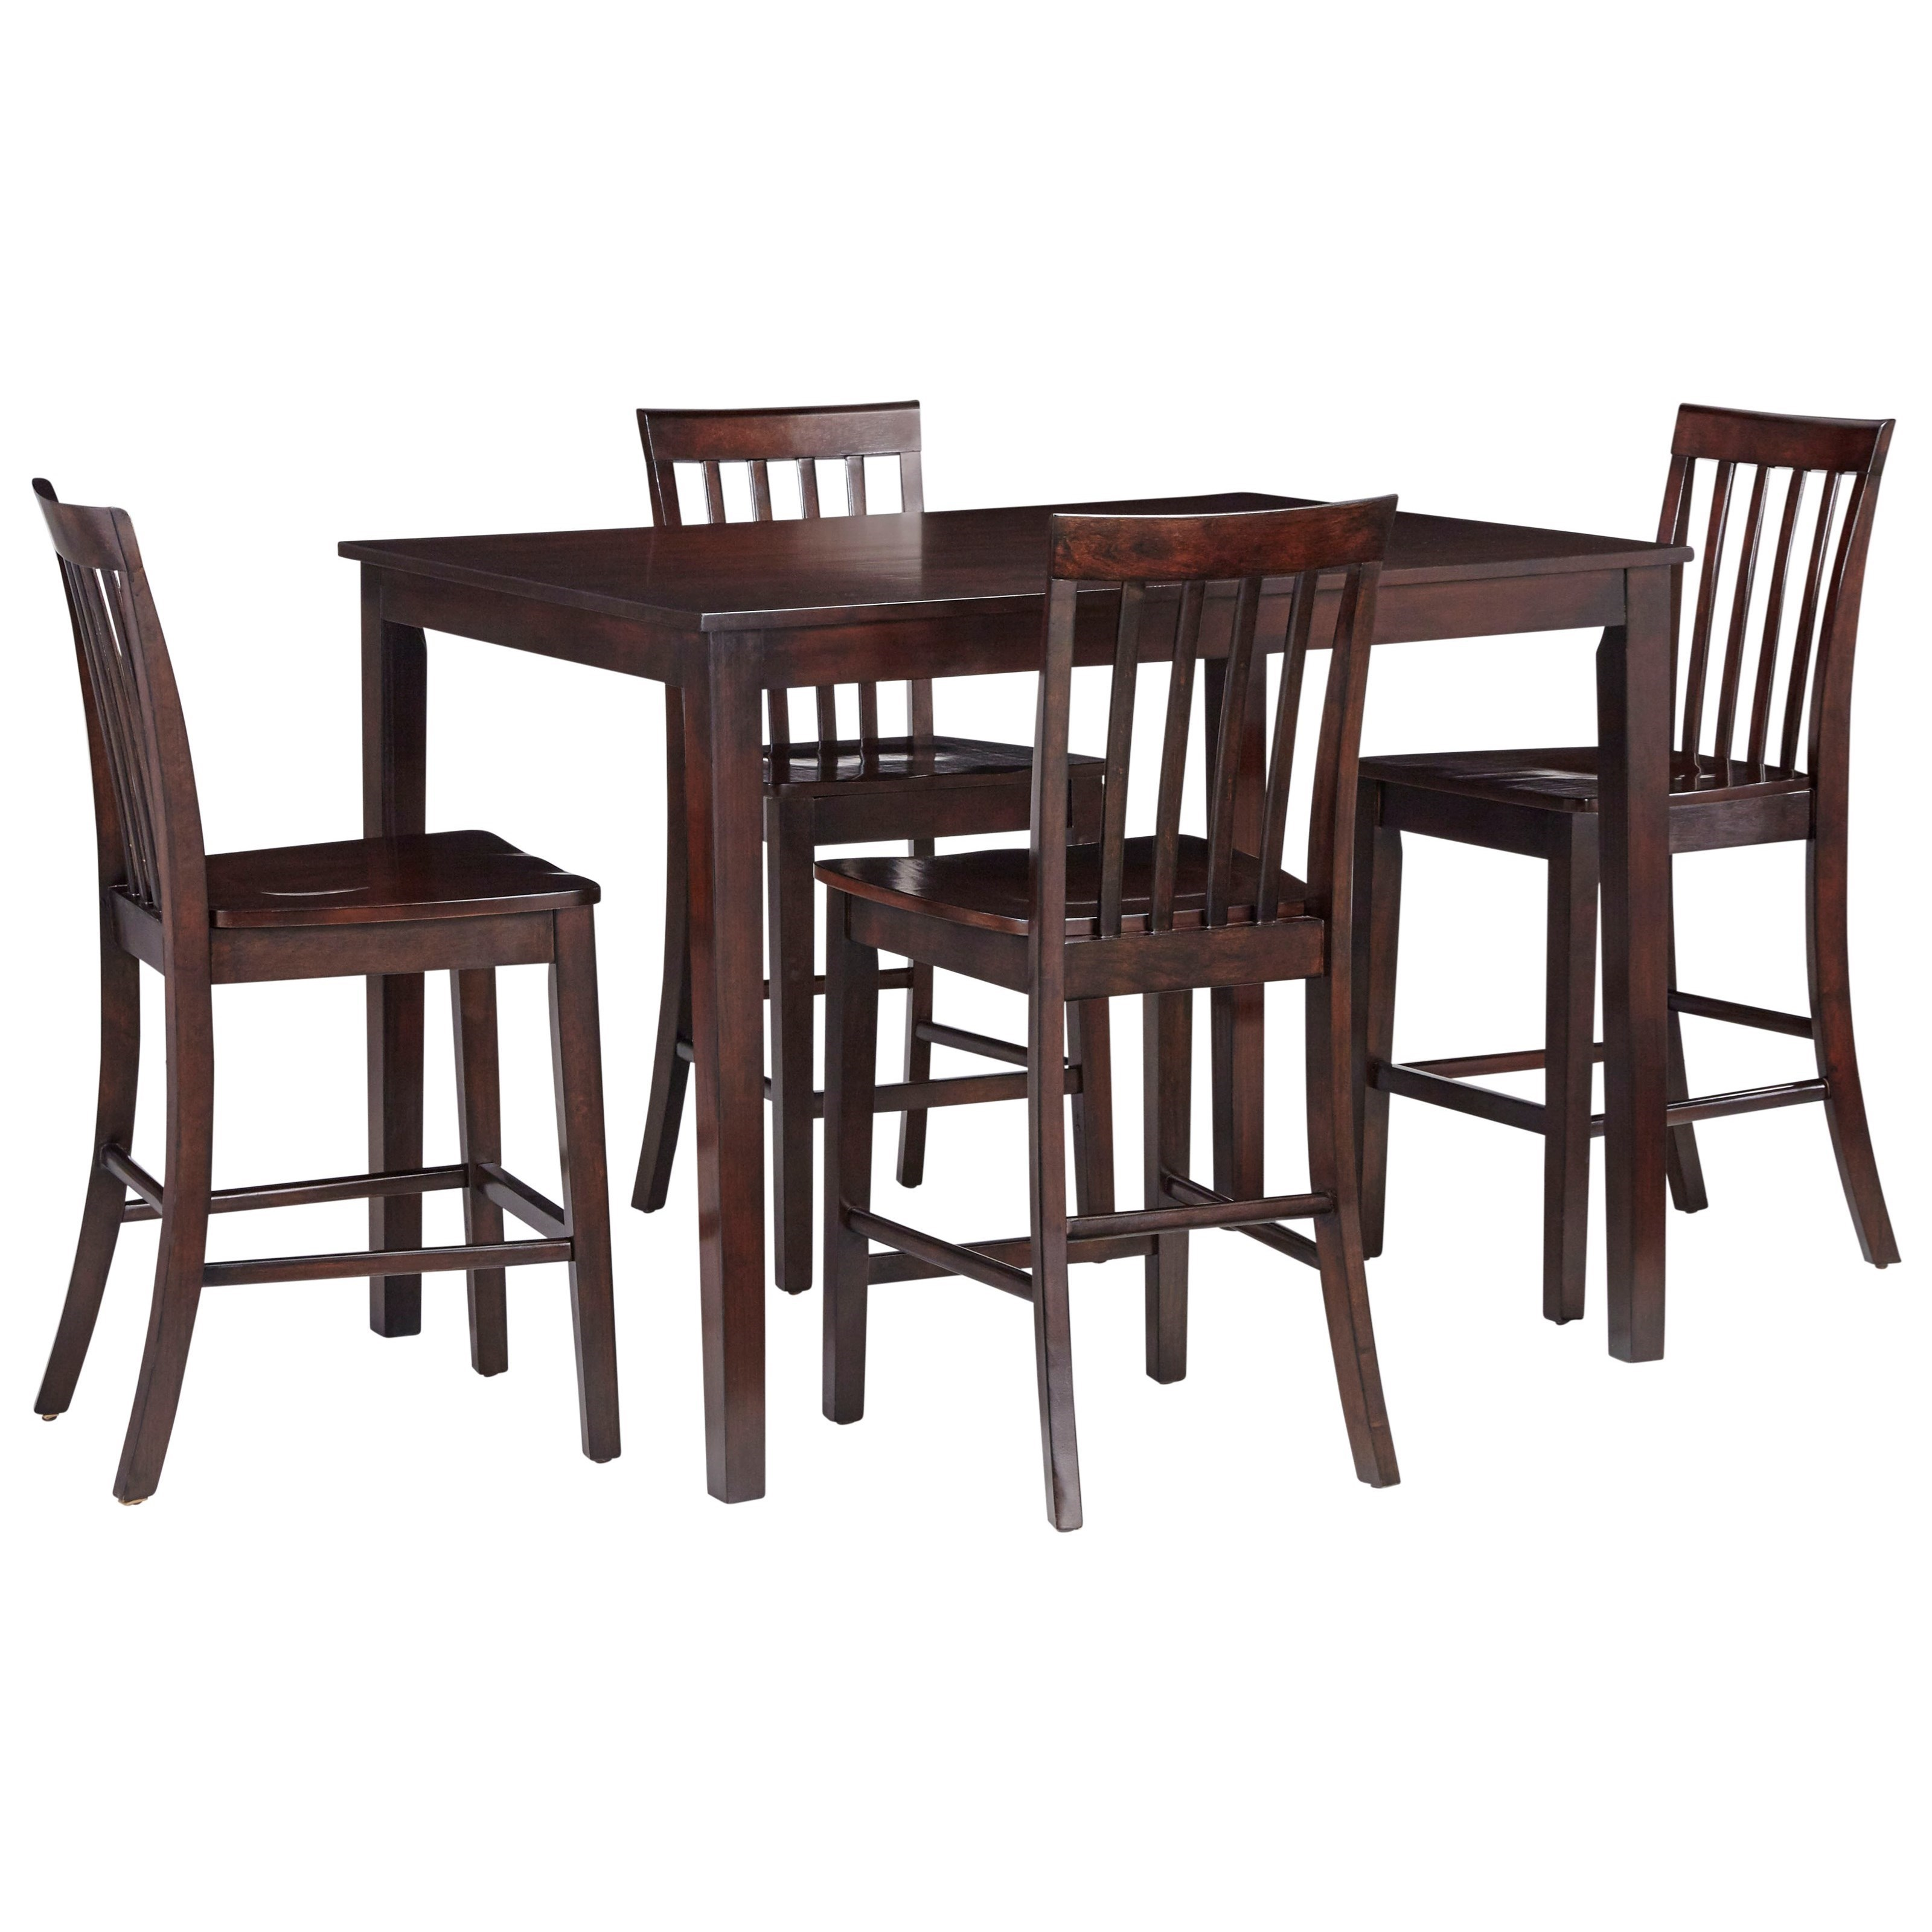 Standard Furniture StantonCounter Height Table U0026 Four Chairs ...